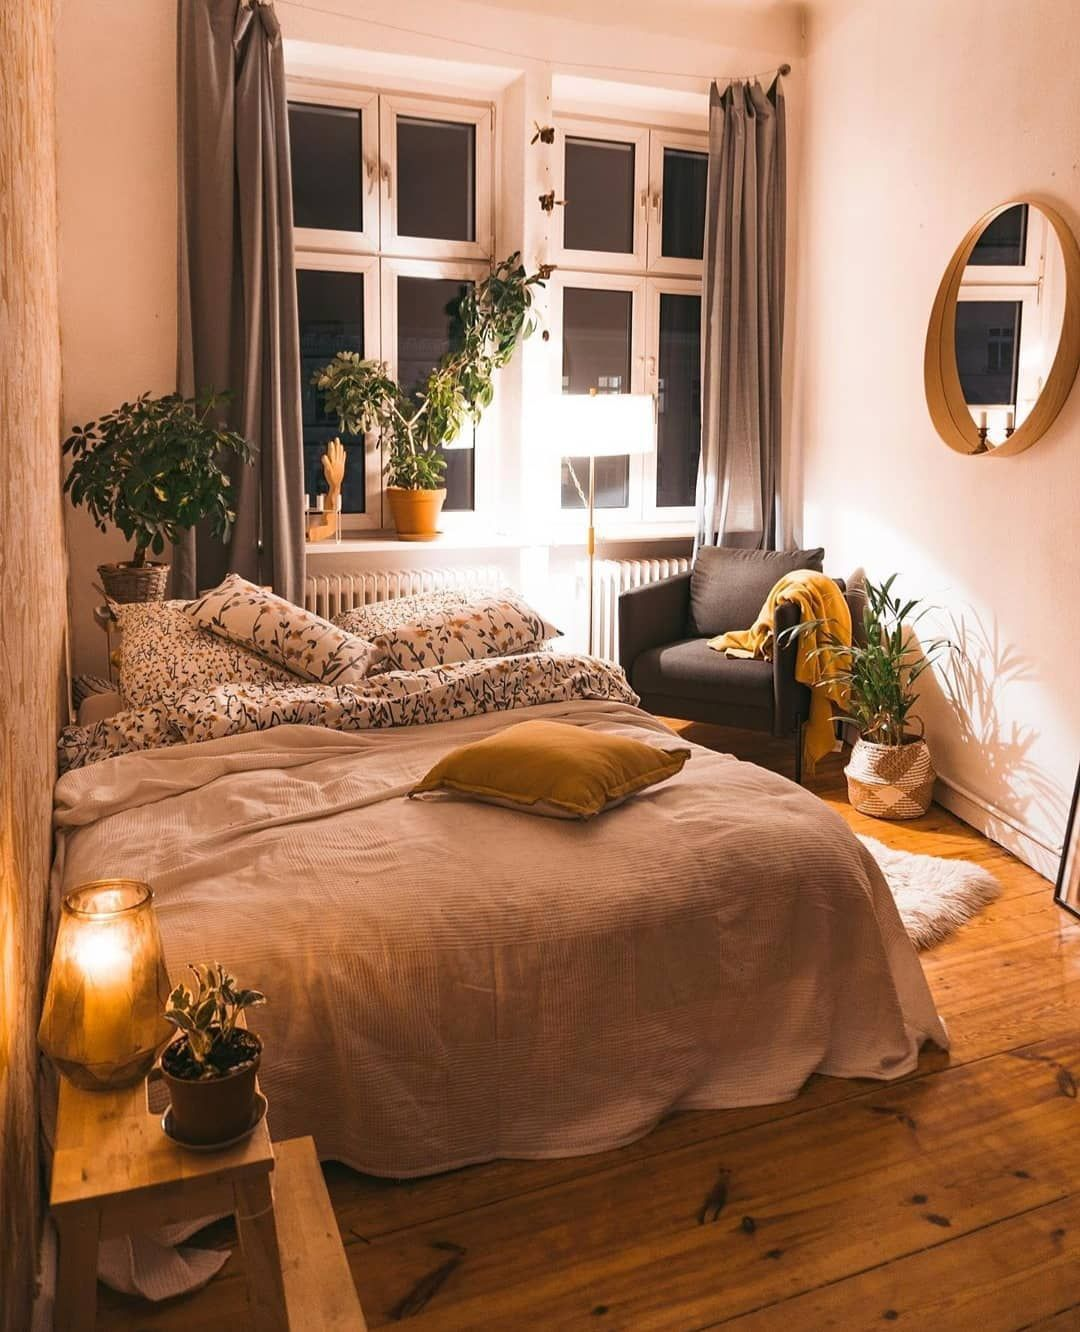 8 Cheap Things to Maximize a Small Bedroom - UDealing - maaghie